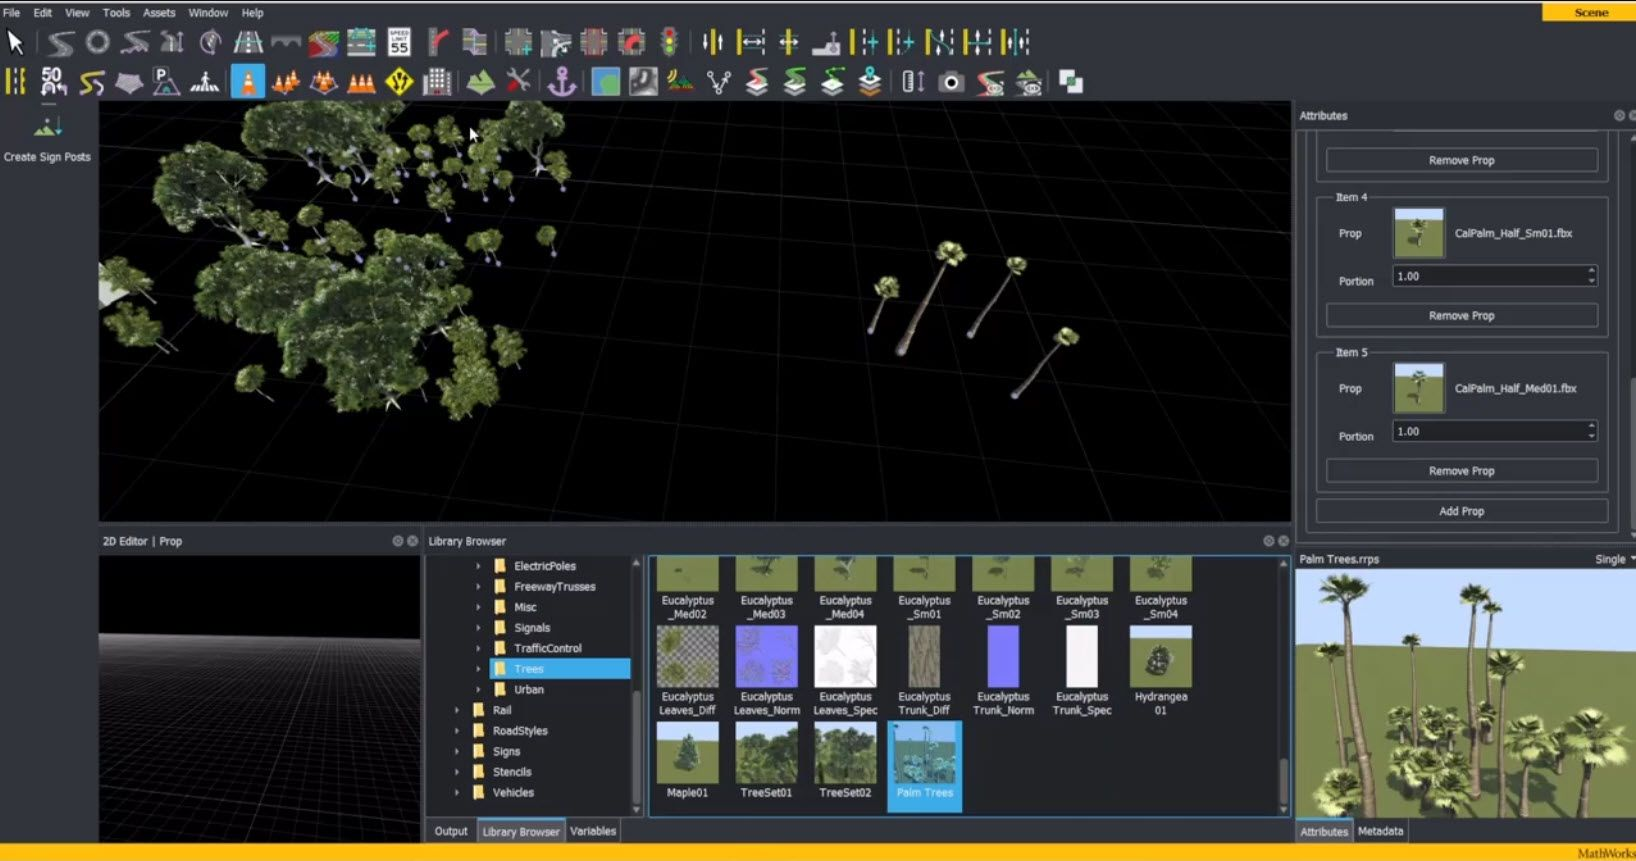 Learn how to create a prop set (ratio of selected props) in RoadRunner interactive editing software.